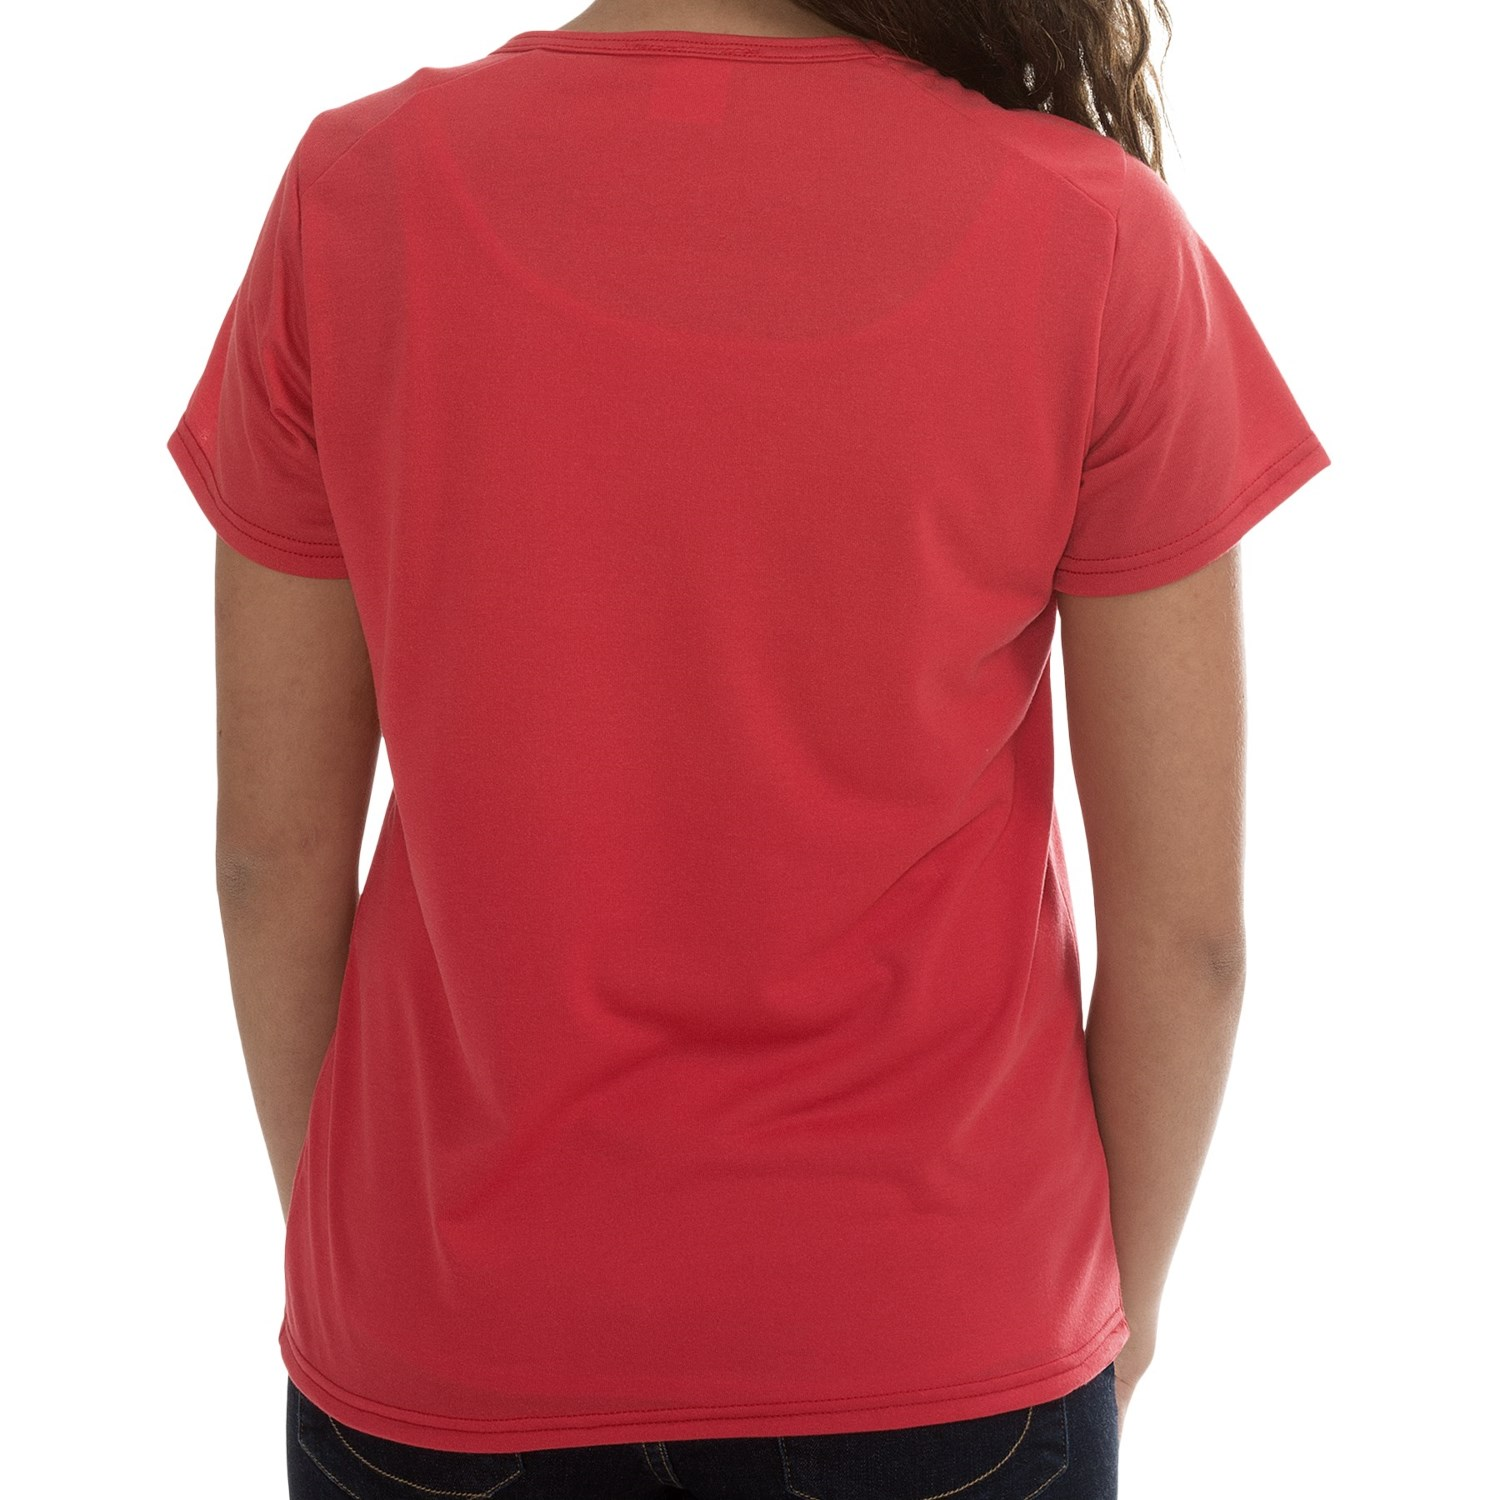 Wickers lightweight base layer t shirt for women save 62 for Womens base layer shirt